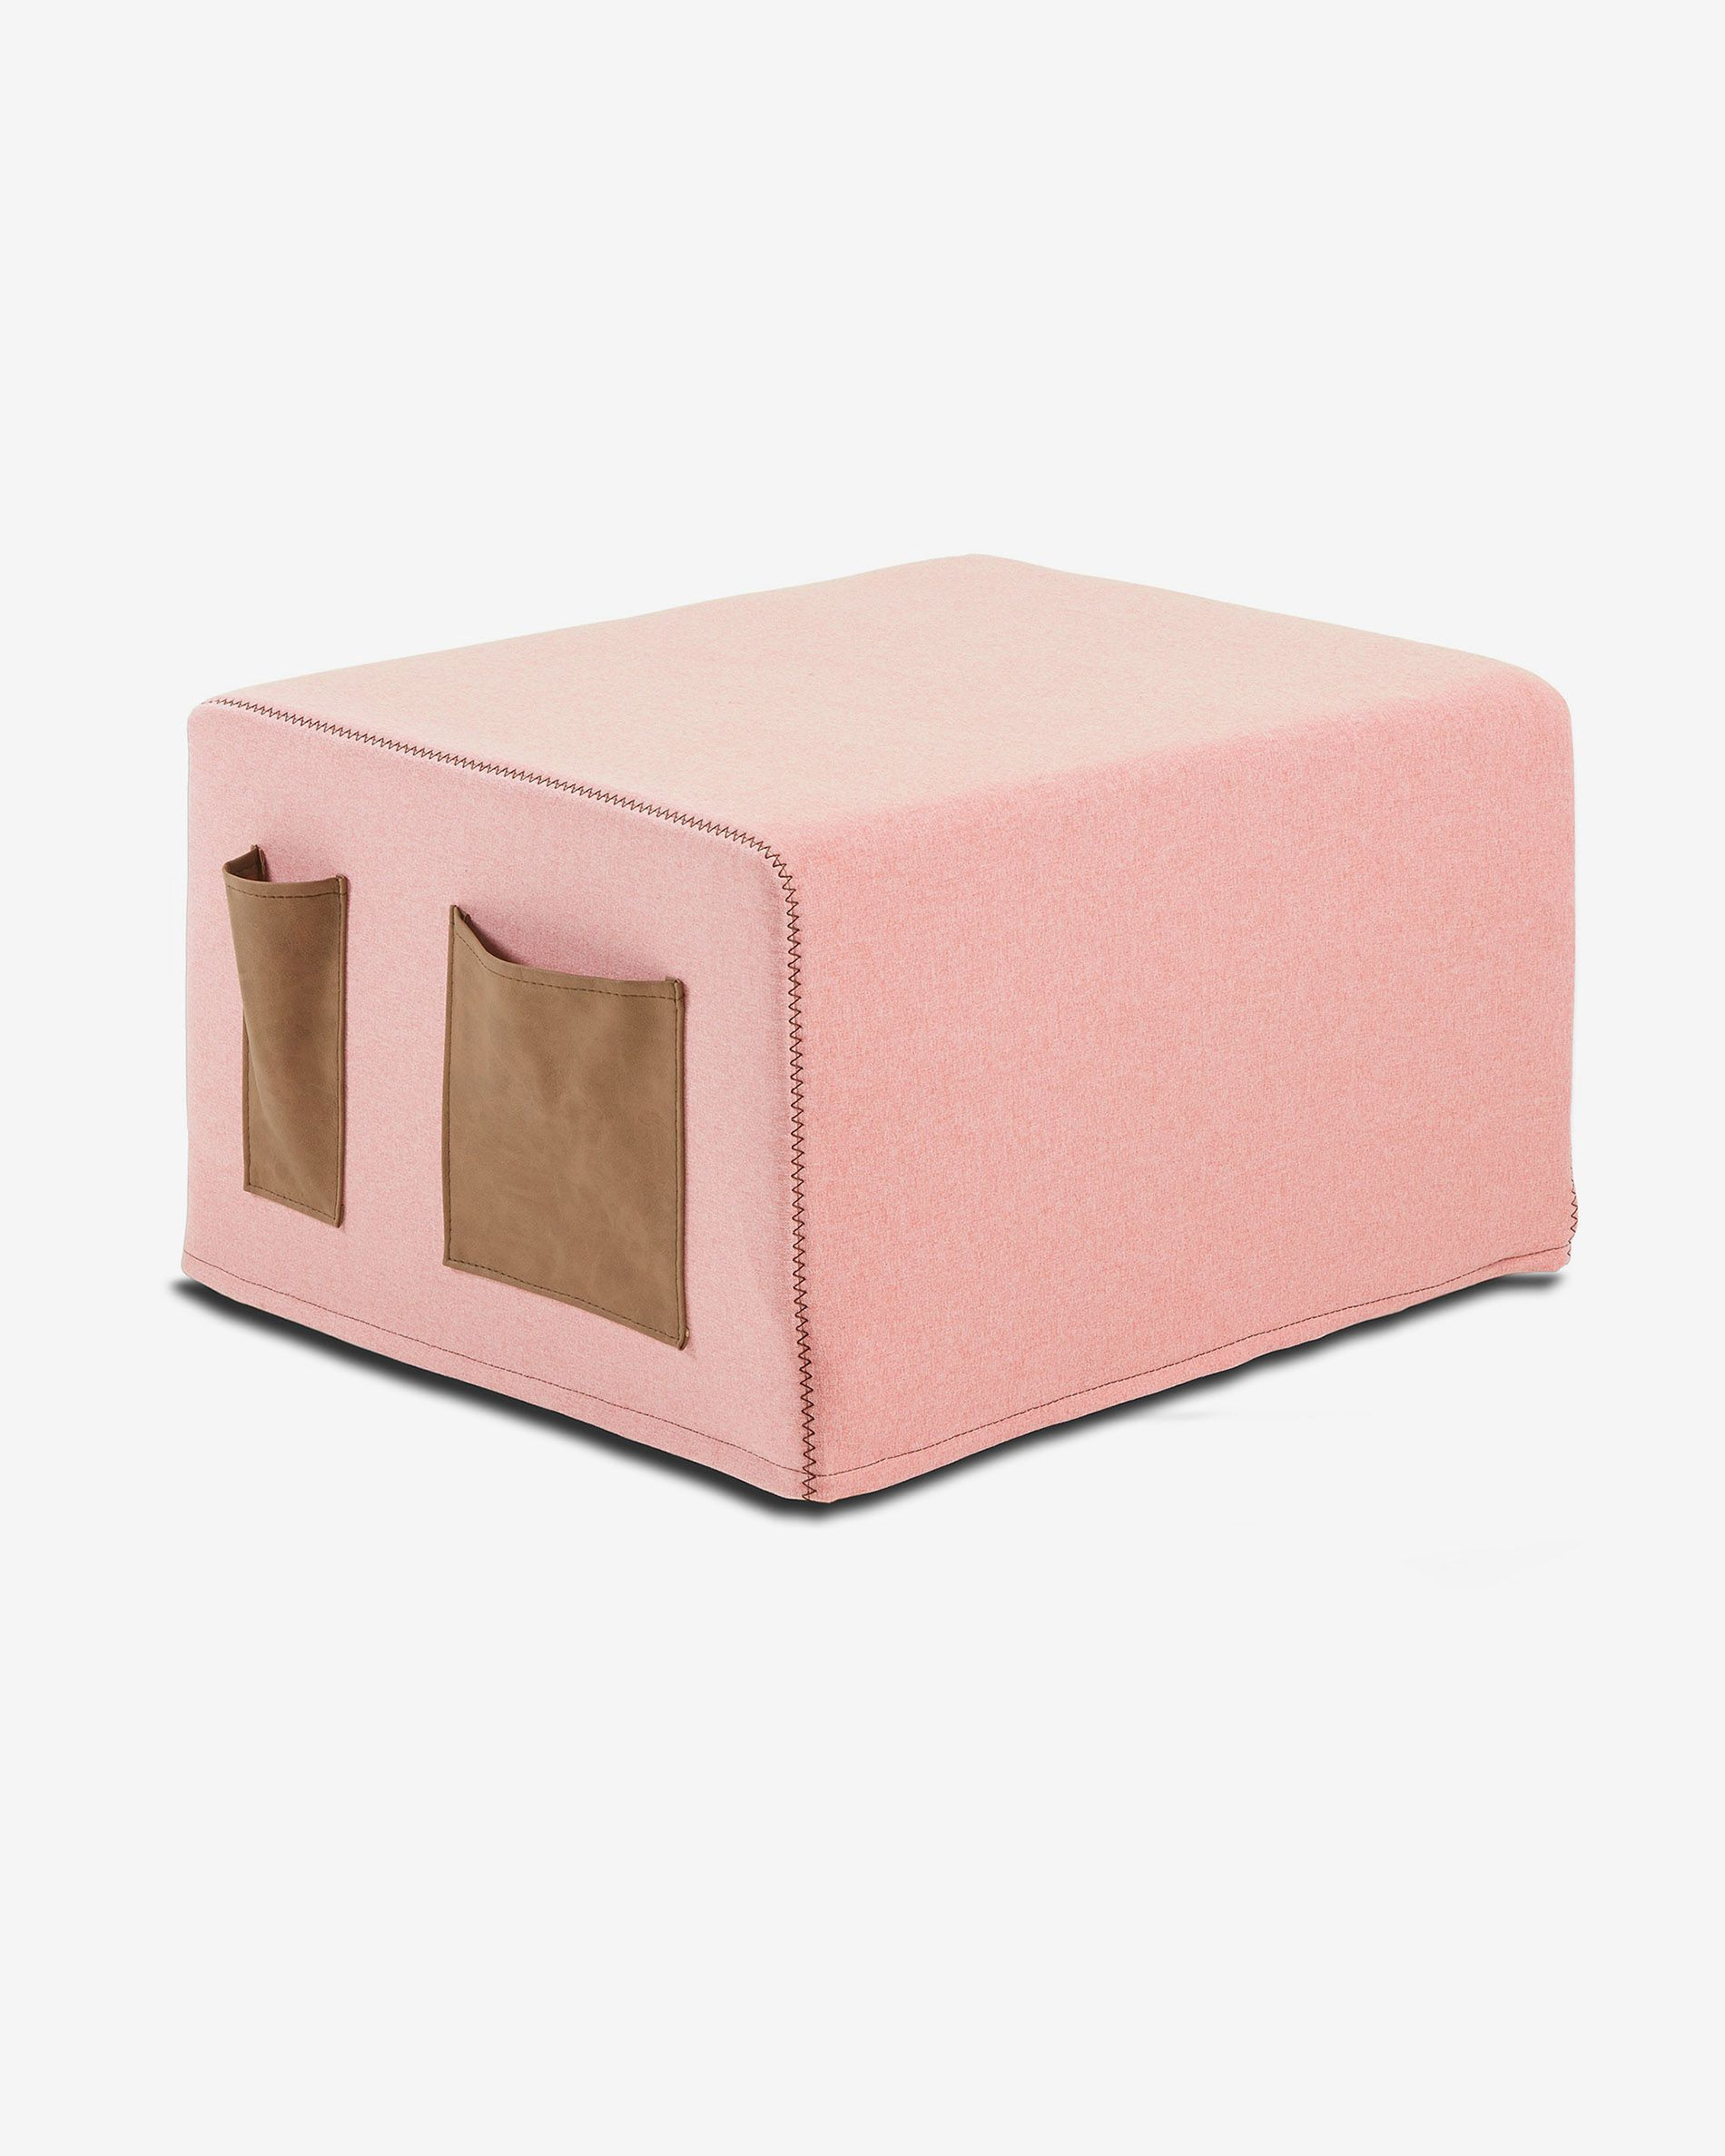 Swell Pink Verdi Bed Pouf Cover Kave Home Uwap Interior Chair Design Uwaporg